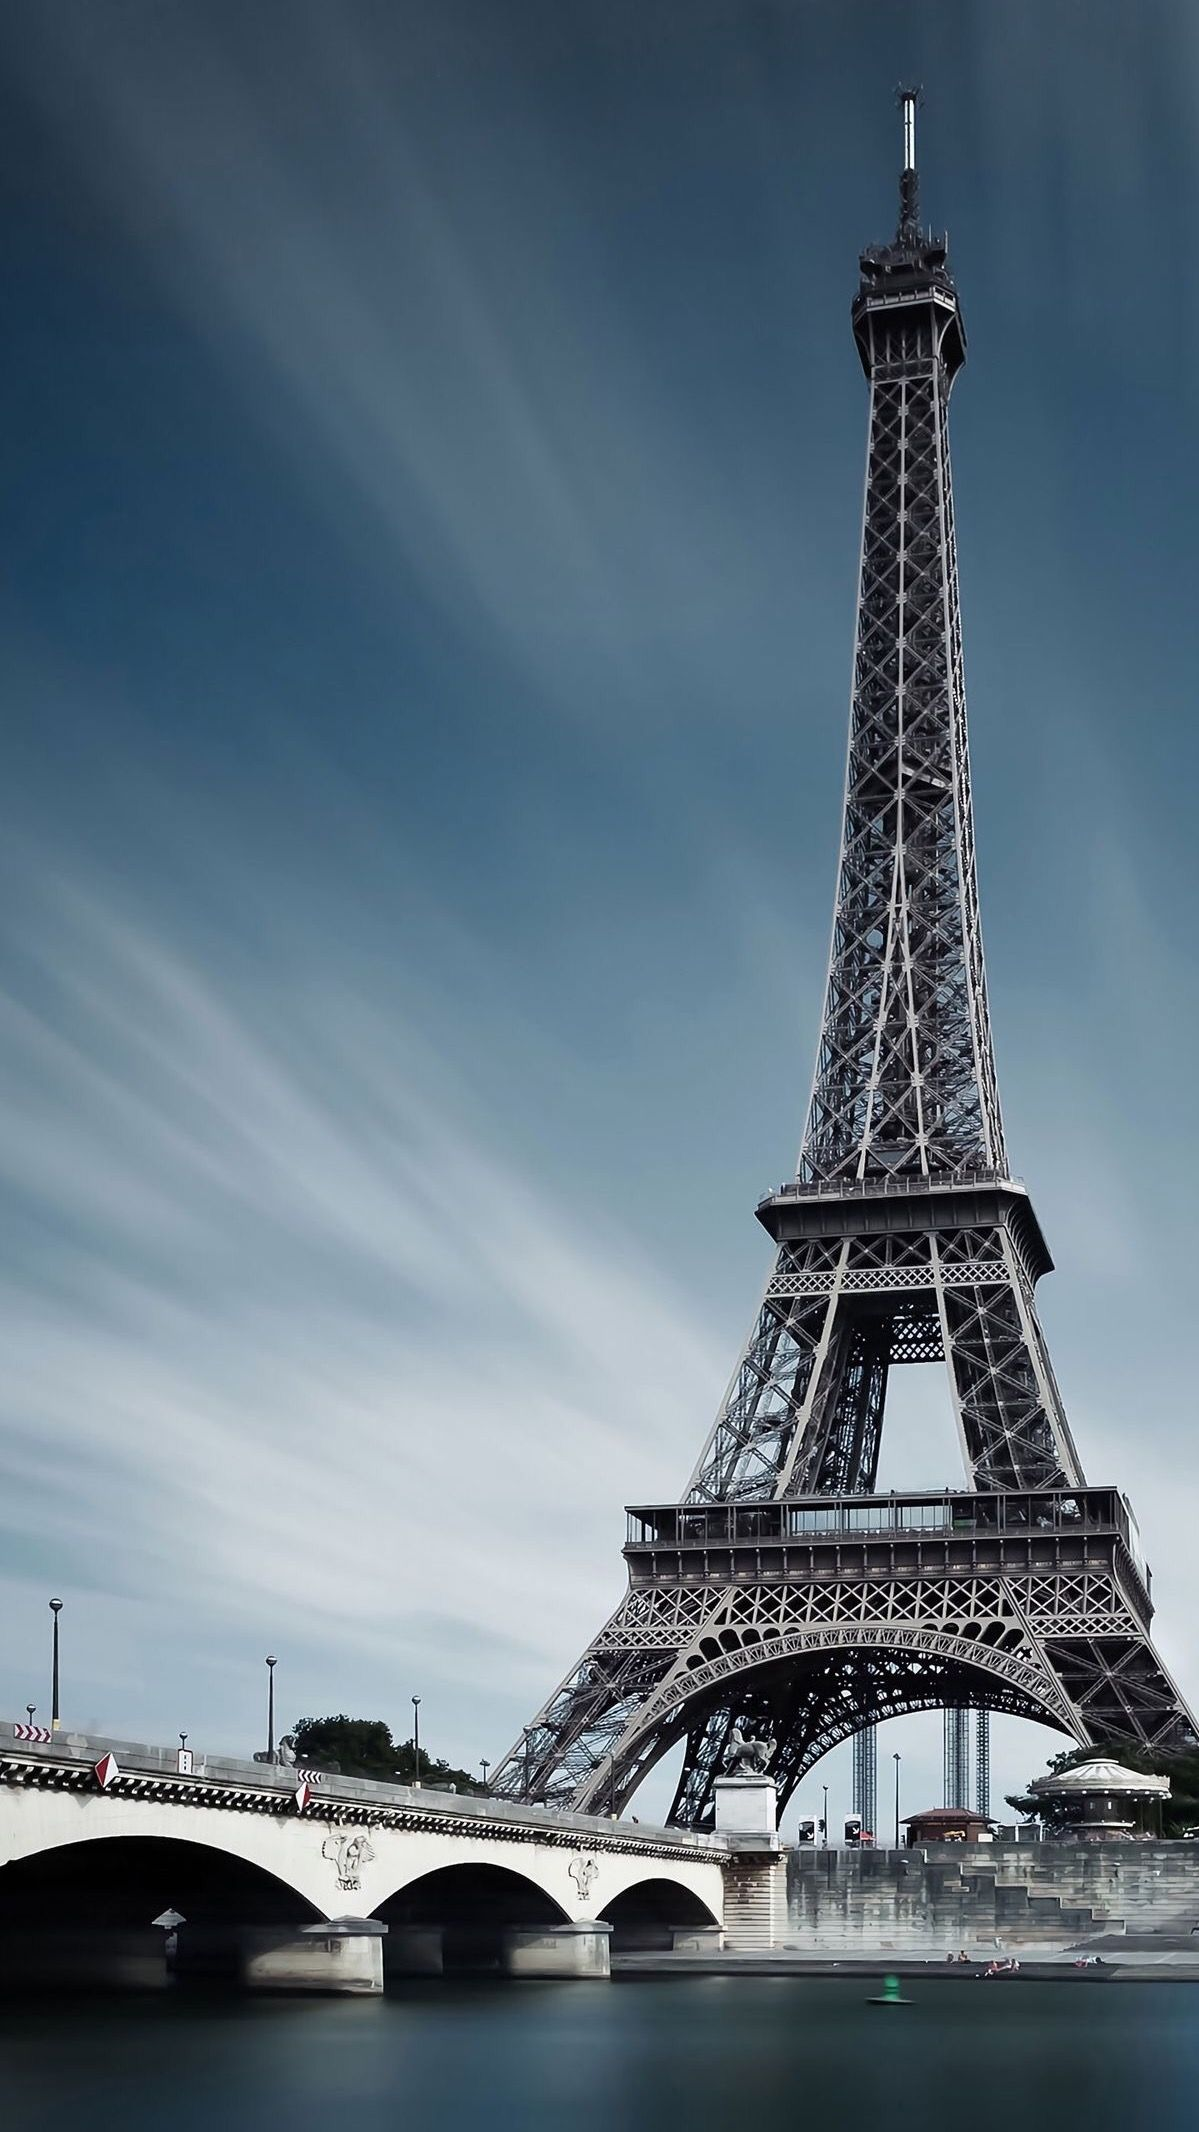 Pin by Christianne Goto on Phone wallpapers Paris